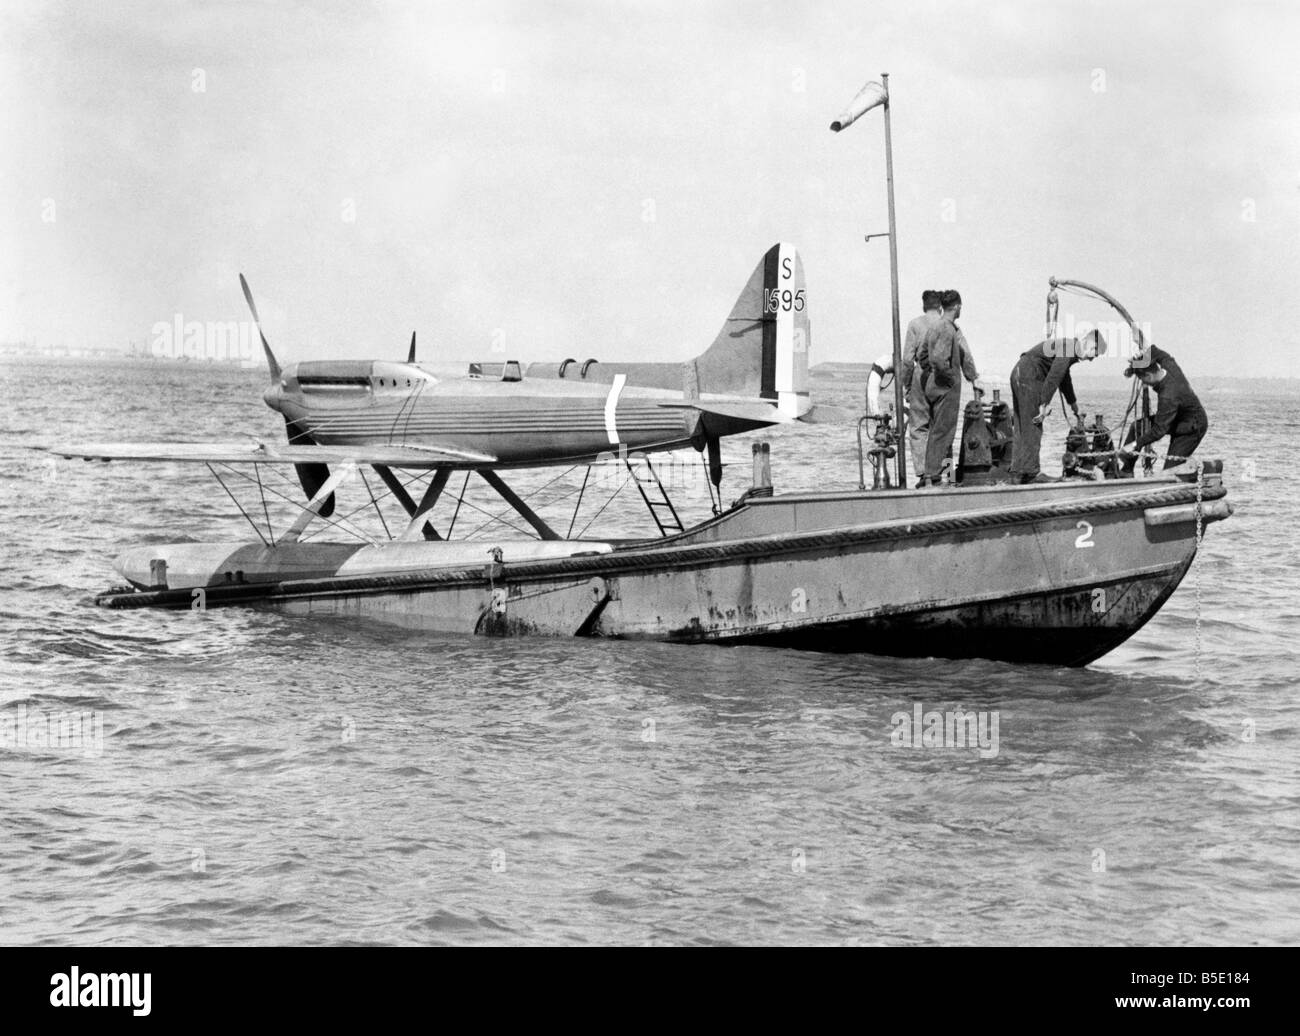 Schneider Trophy Race 1931. The Supermarine Rolls-Royce Seaplane S.6.B. which obtained the Schneider trophy for Stock Photo